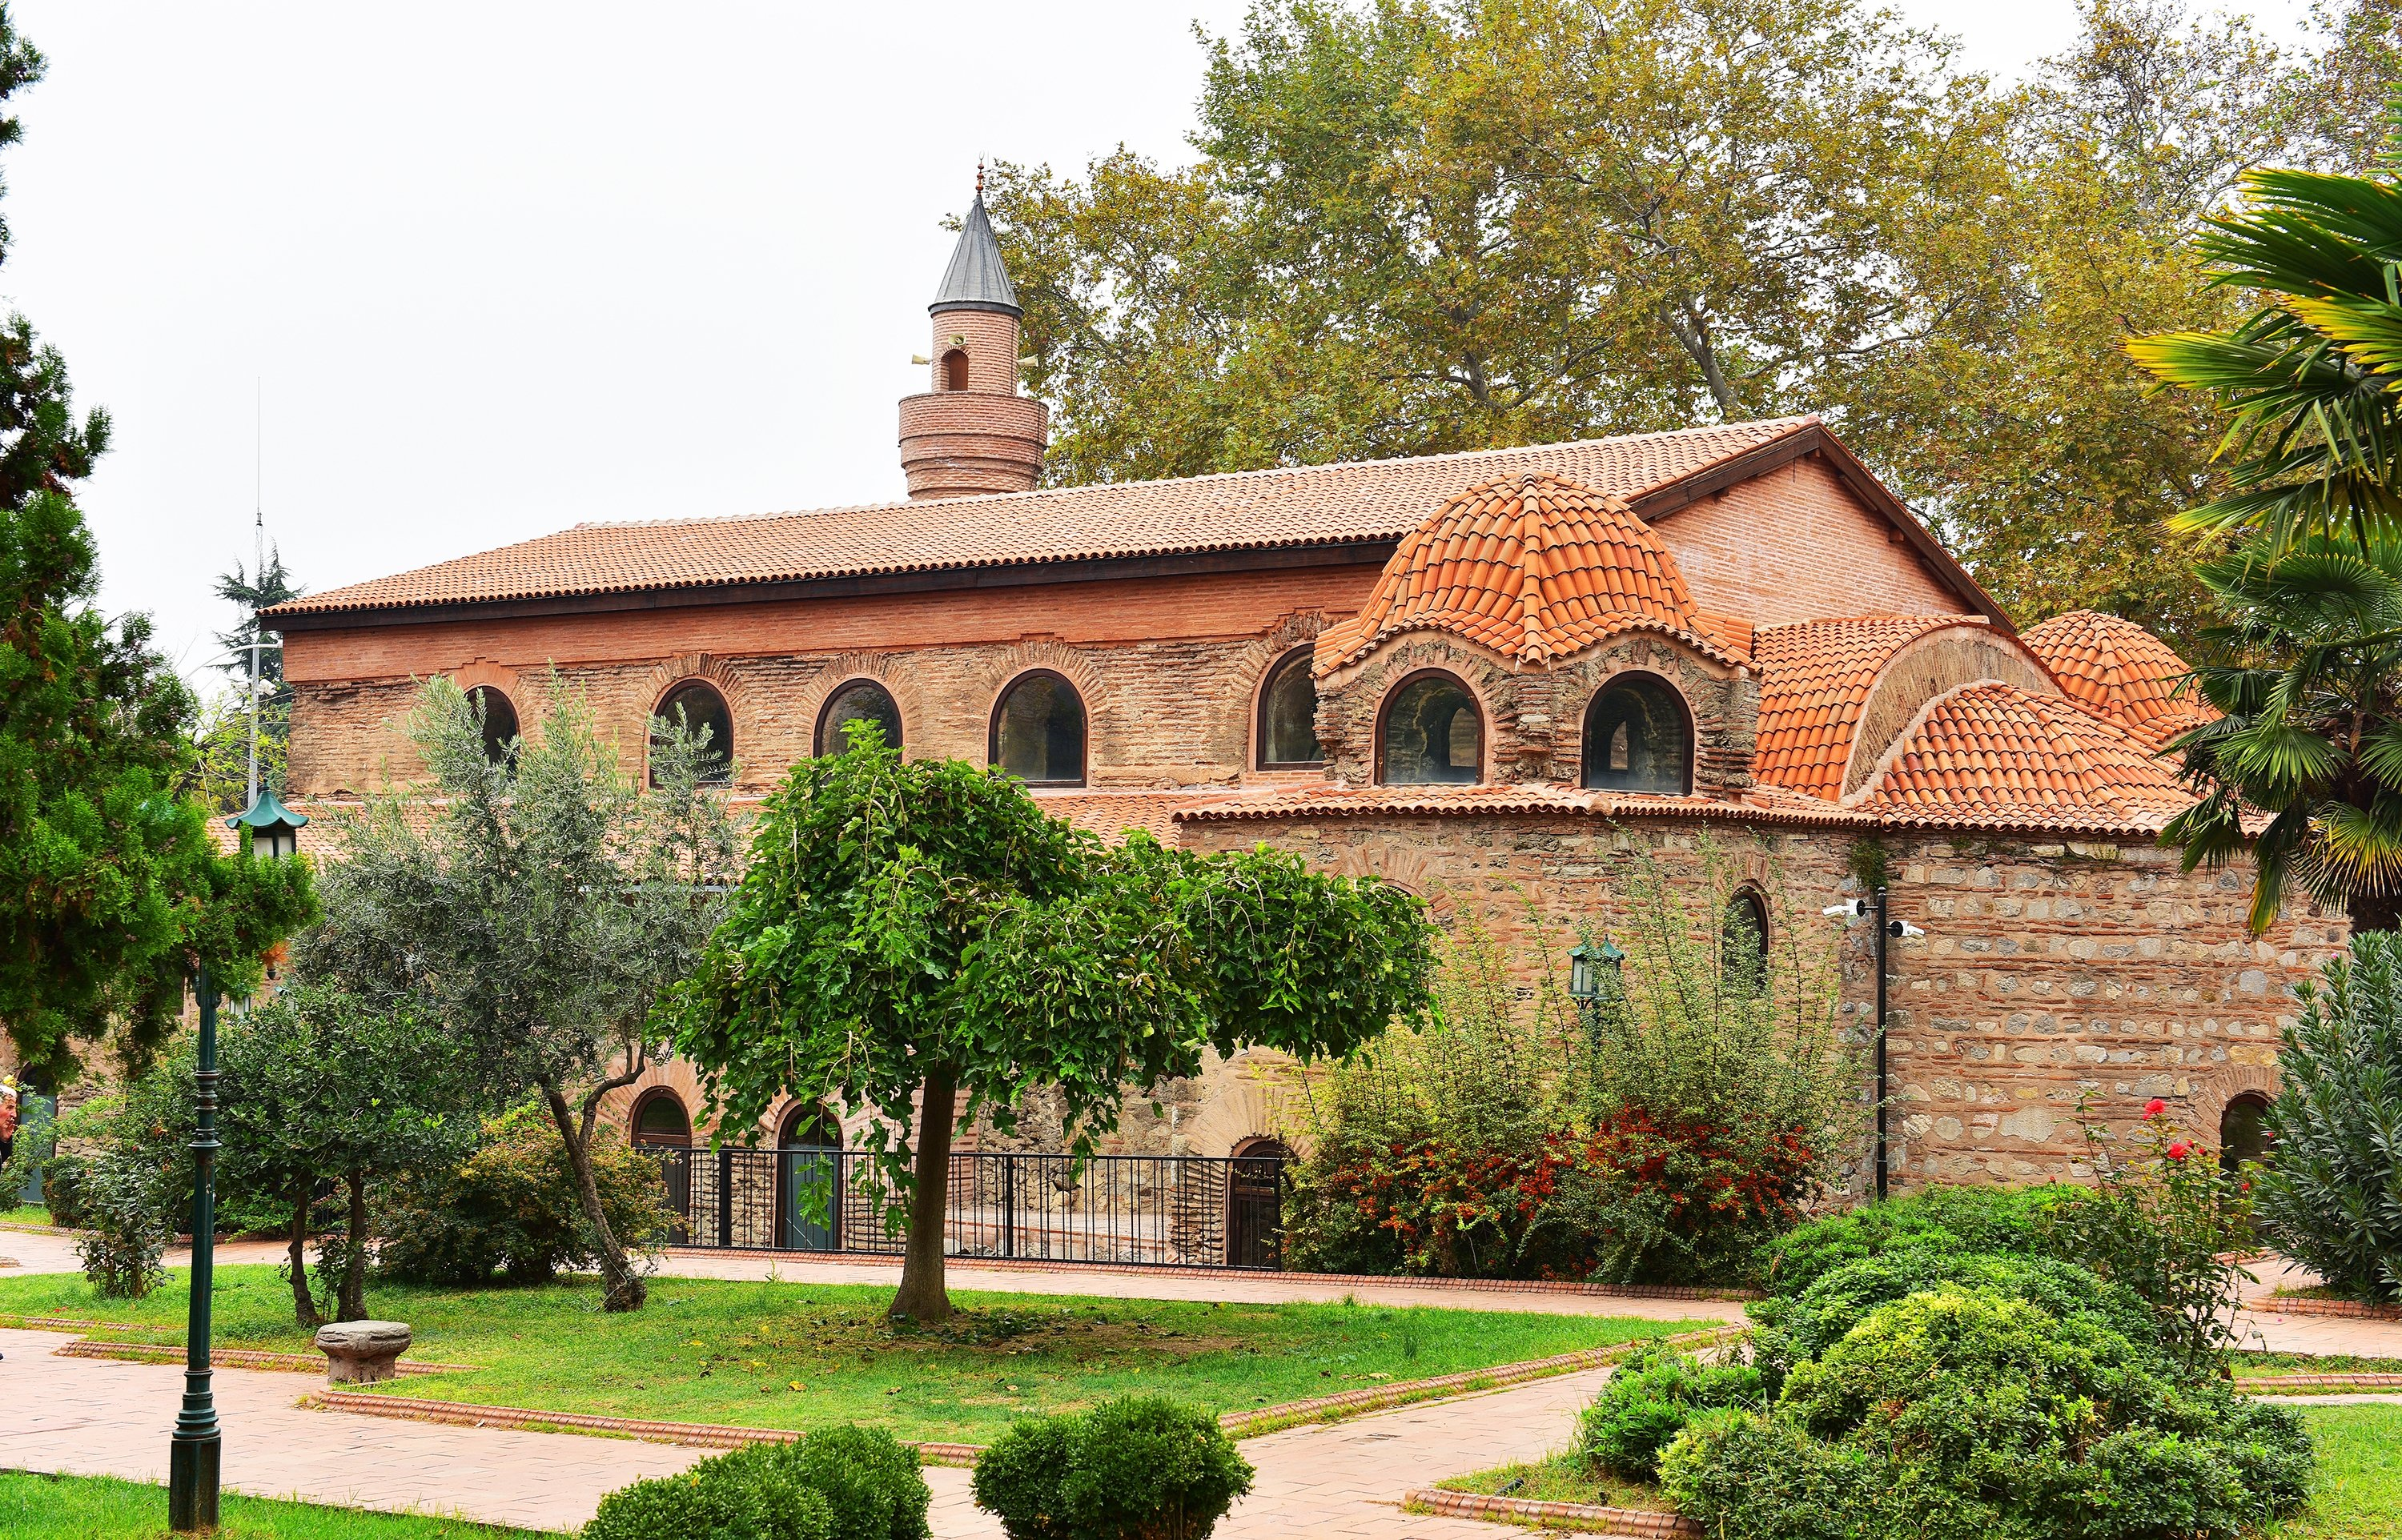 A view from the Church of Hagia Sophia in Iznik, which was converted into a mosque during the reign of Orhan Ghazi, Bursa, western Turkey. (Shutterstock Photo)